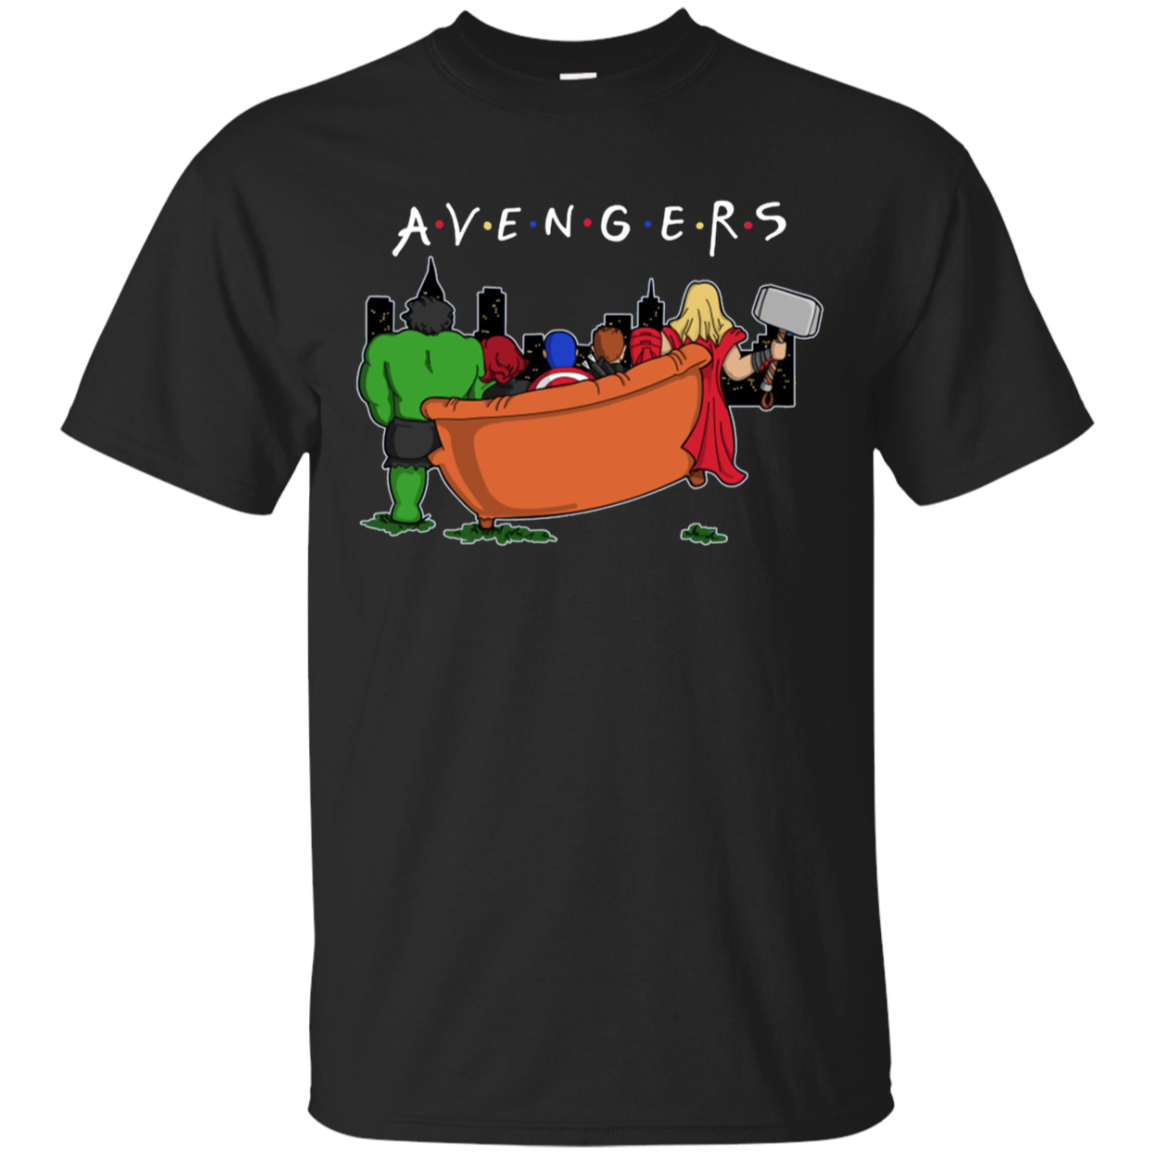 Funny Friends Movie Avengers T-shirt We'll Be There For You T-Shirt